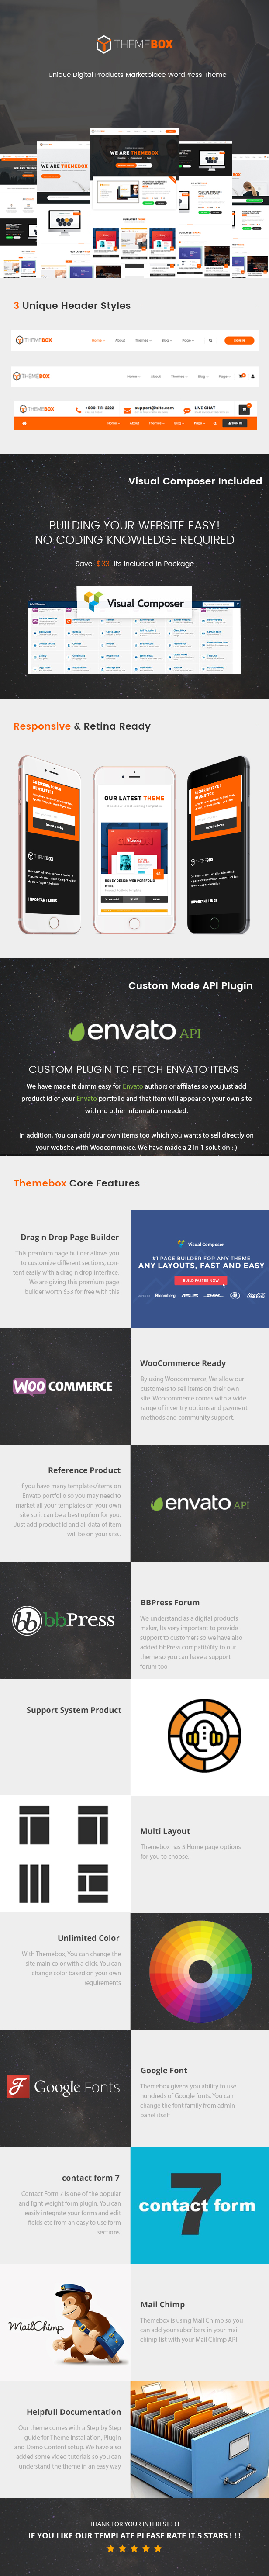 Themebox - Unique Digital Products Ecommerce WordPress Theme - 1